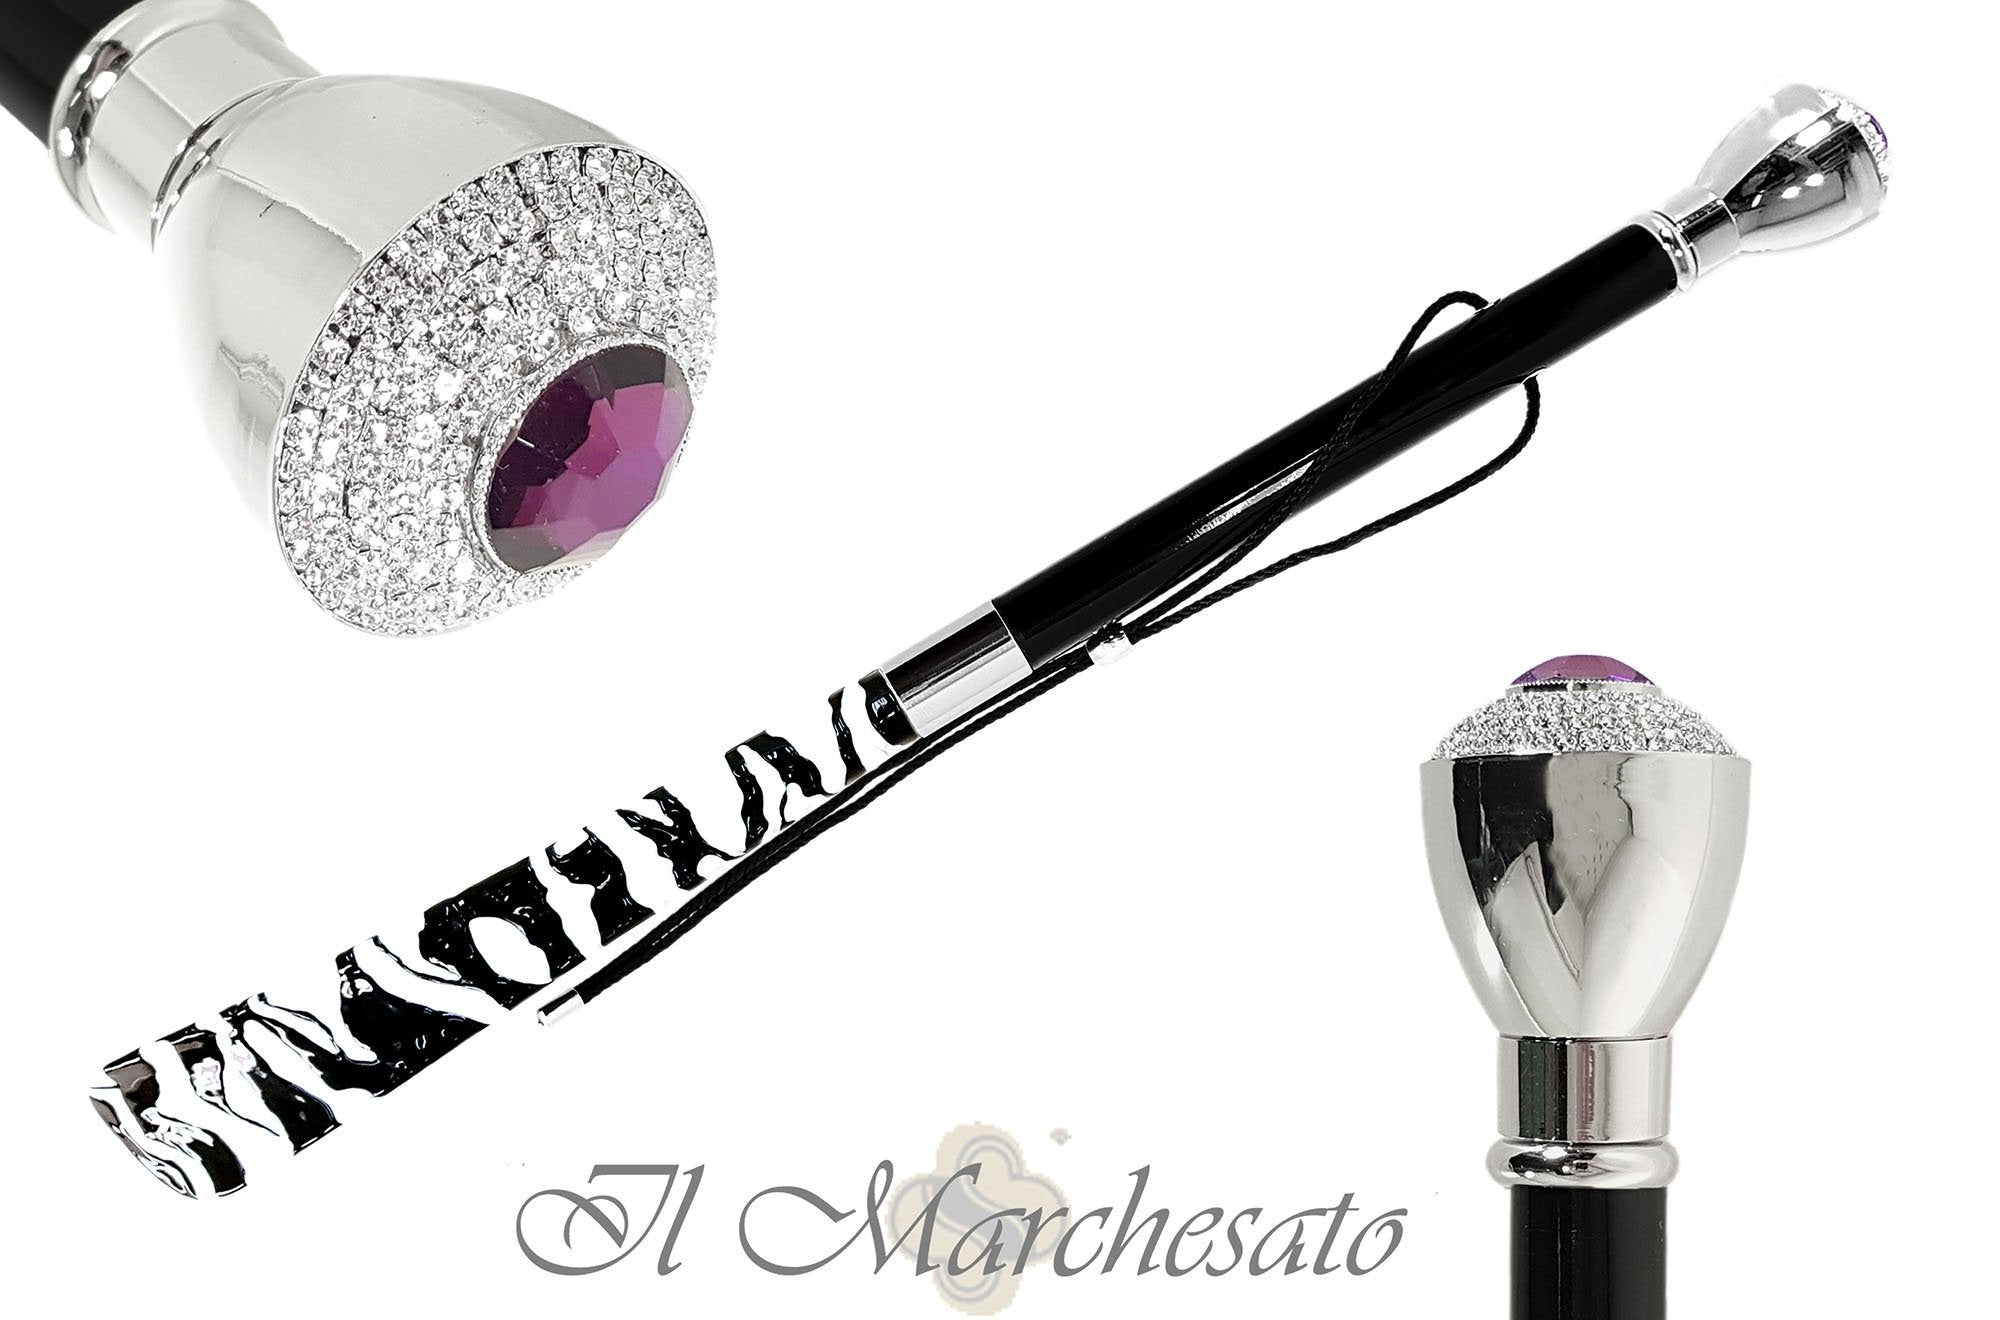 Luxury Silver-Plated Shoehorn - il-marchesato